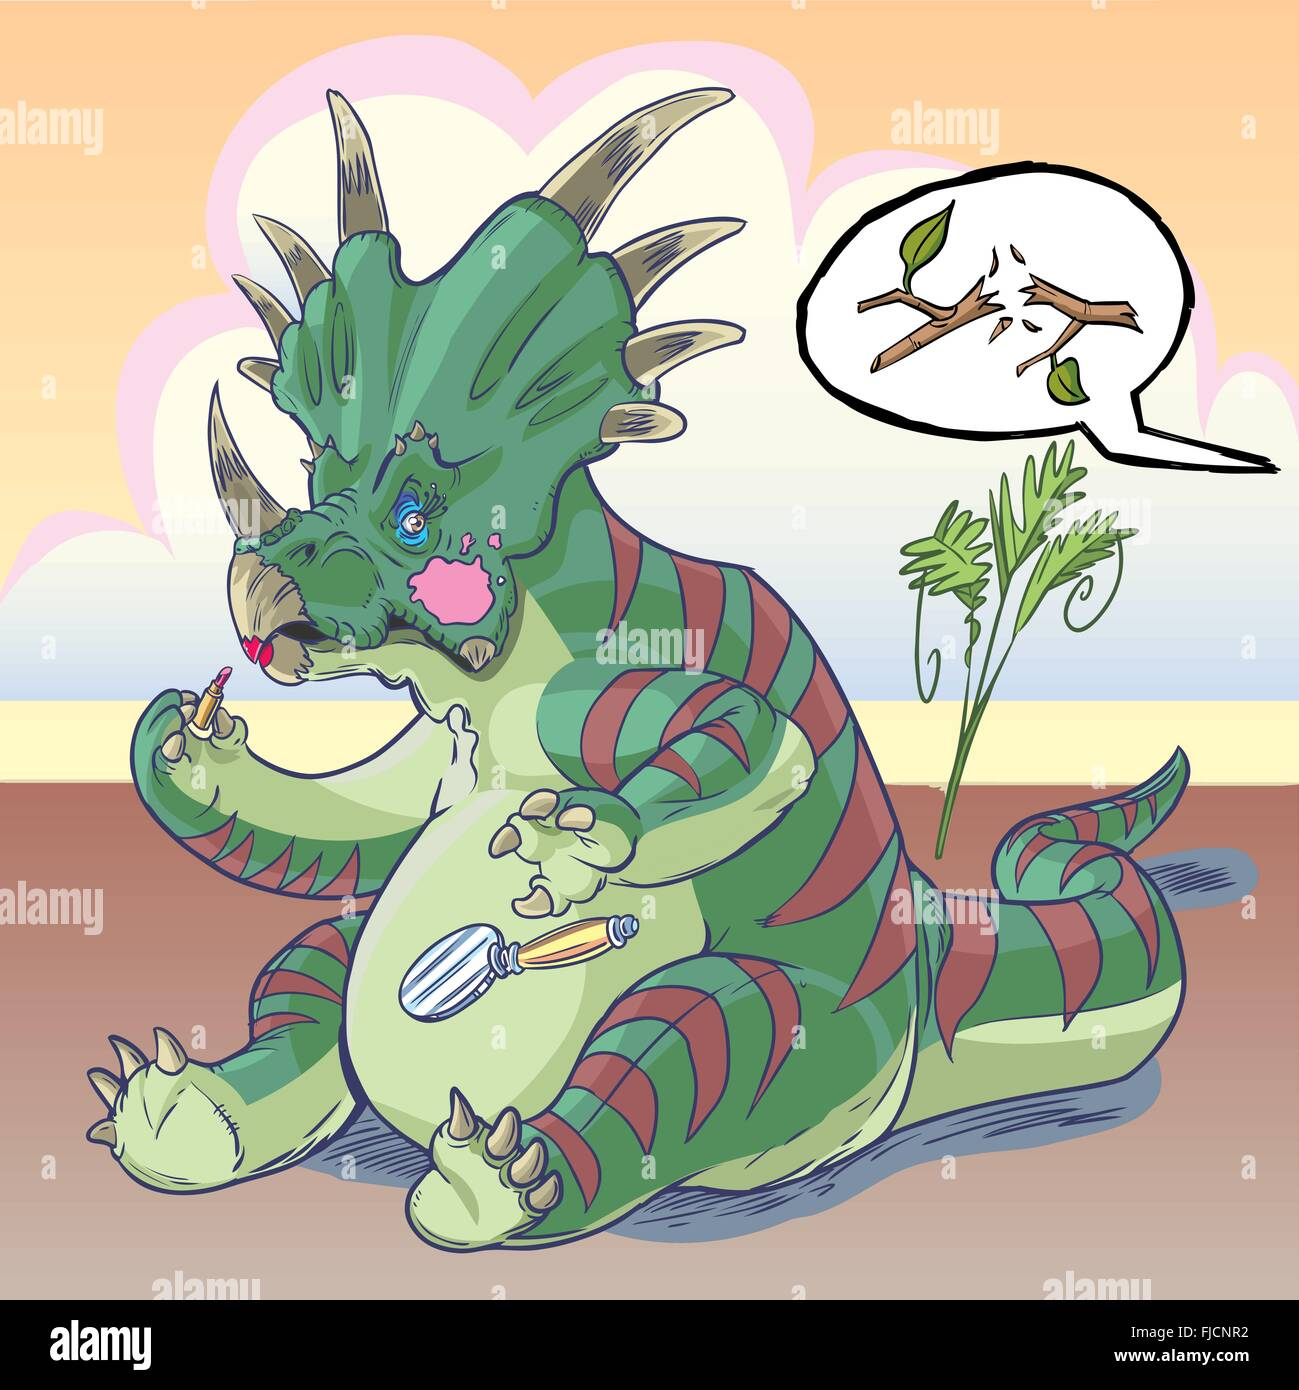 A self-conscious Styracosaurus dinosaur is applying makeup, and is suddenly startled by a twig snapping behind him. - Stock Vector